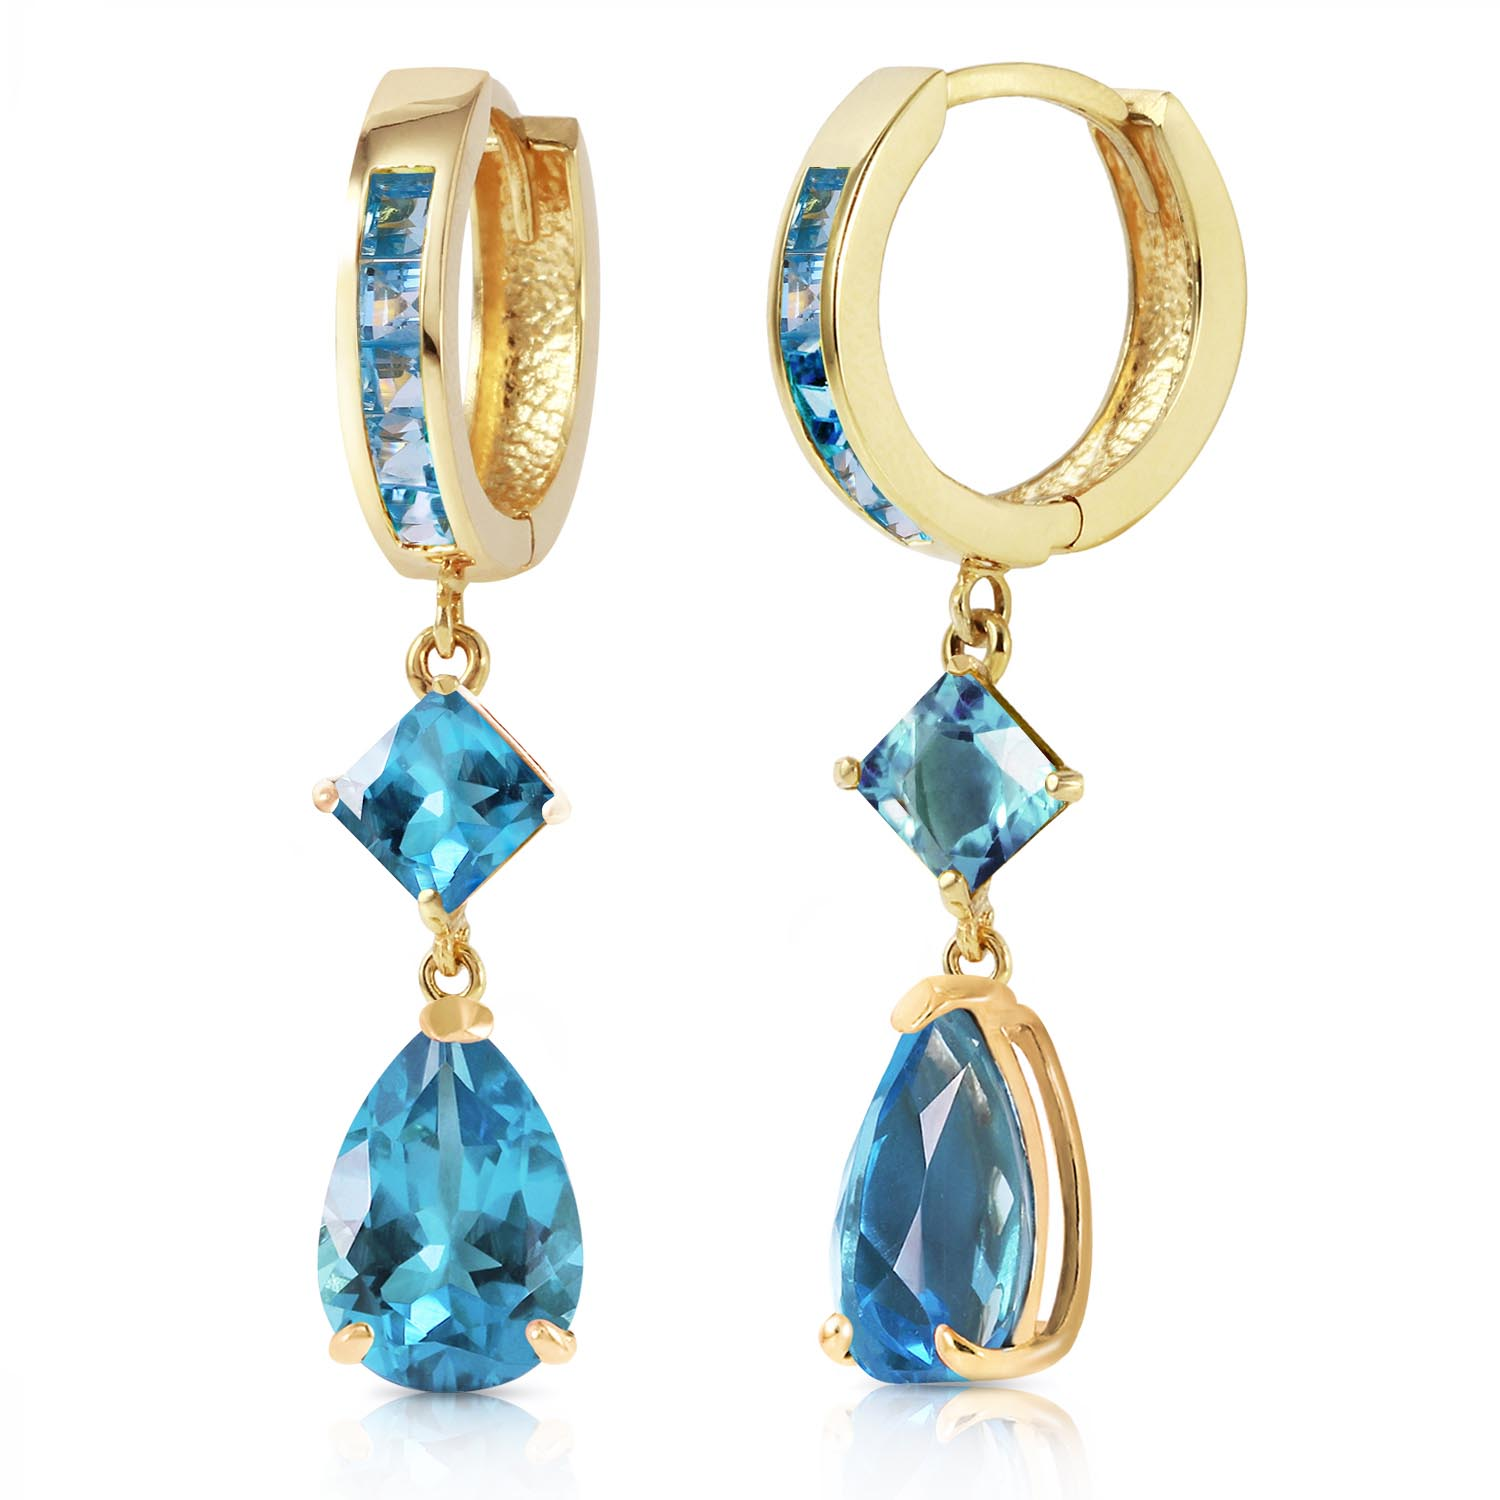 Blue Topaz Droplet Huggie Earrings 5.62ctw in 9ct Gold